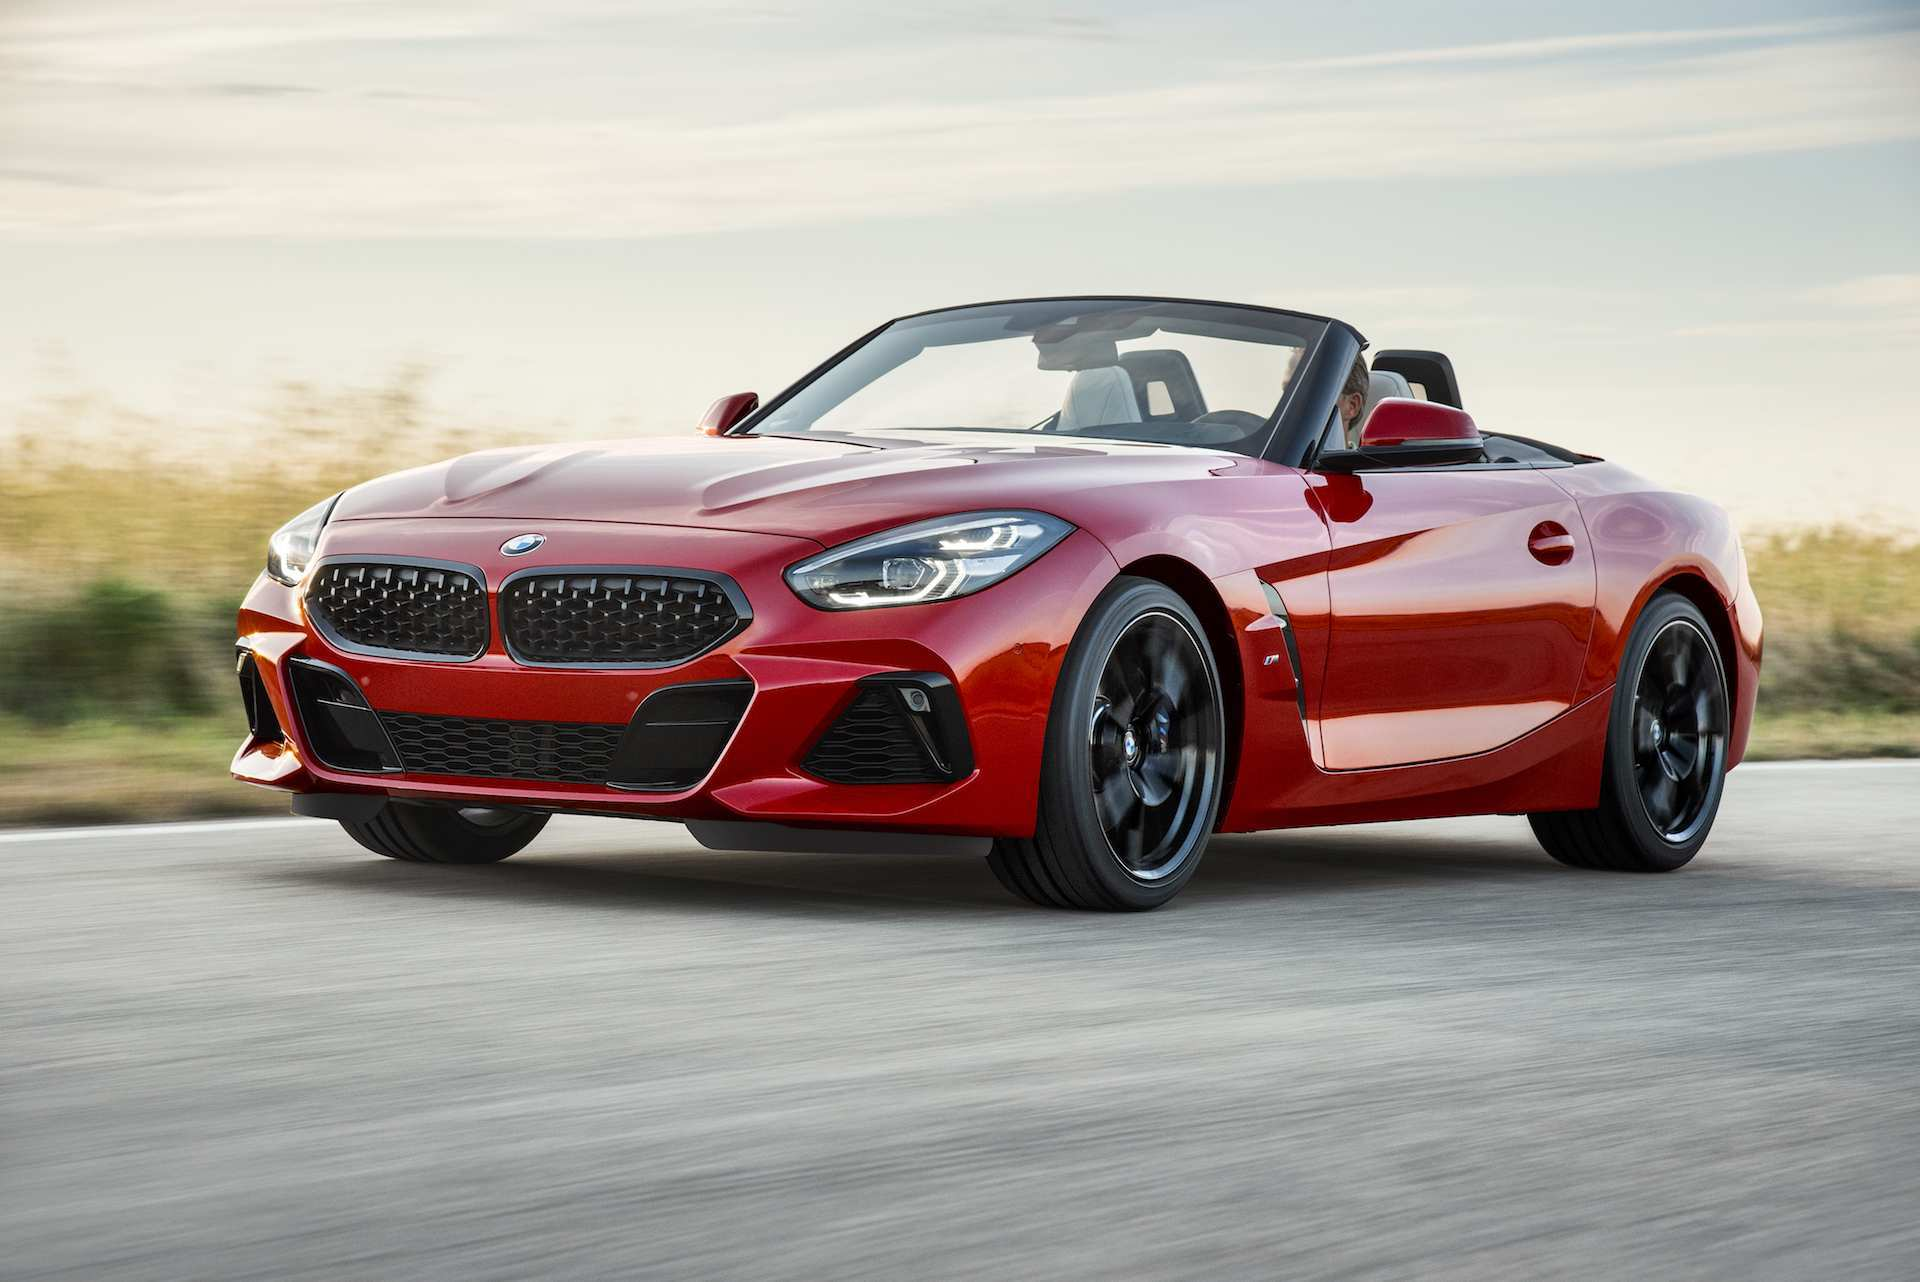 13 New Best Bmw New Z4 2019 New Release Release Date with Best Bmw New Z4 2019 New Release